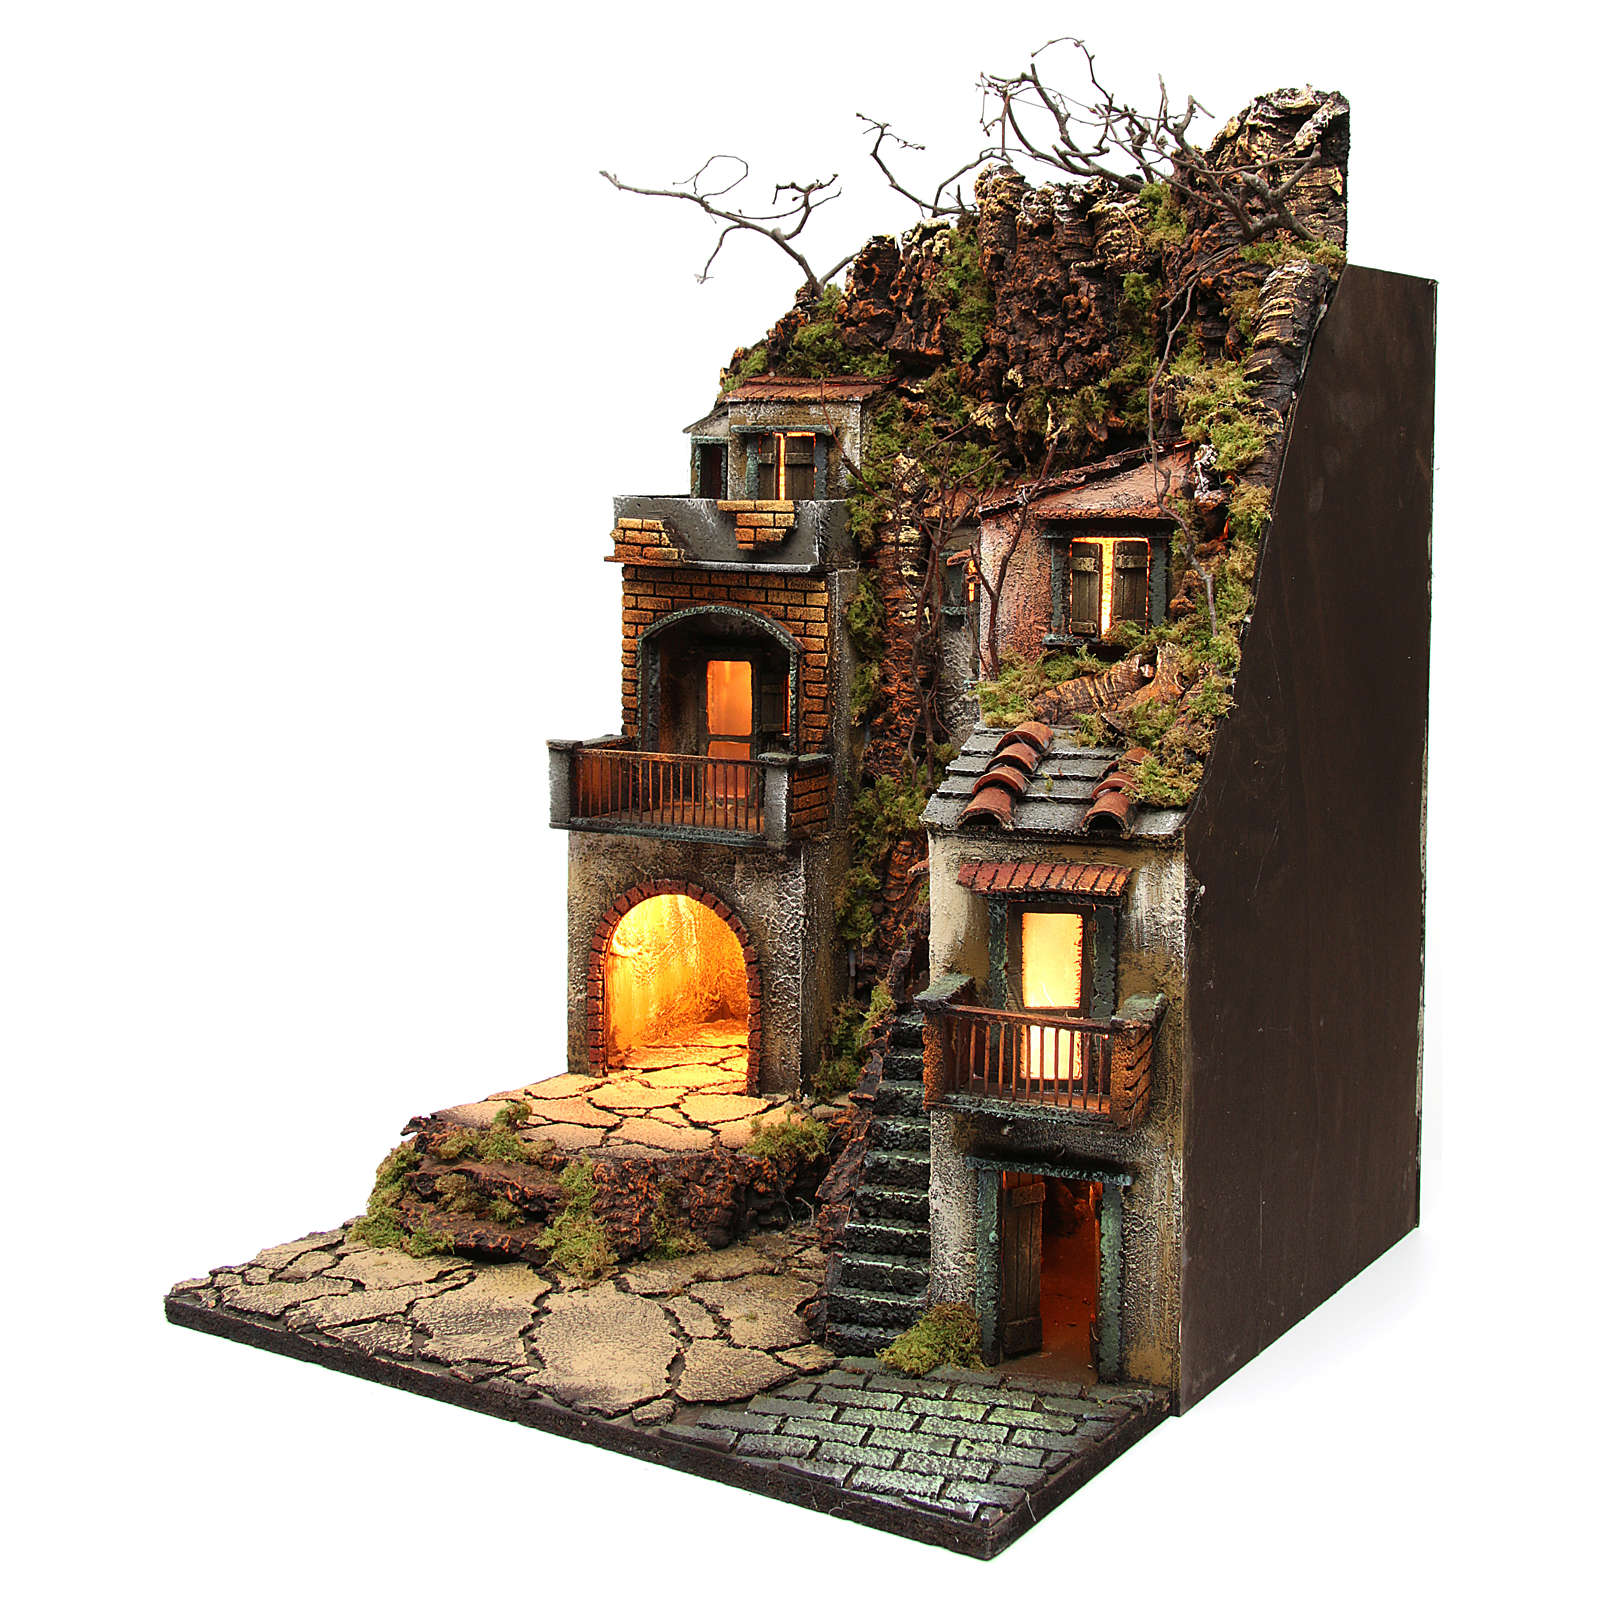 Bourg with balconies and lights for Nativity Scene 65x50x50 cm 4